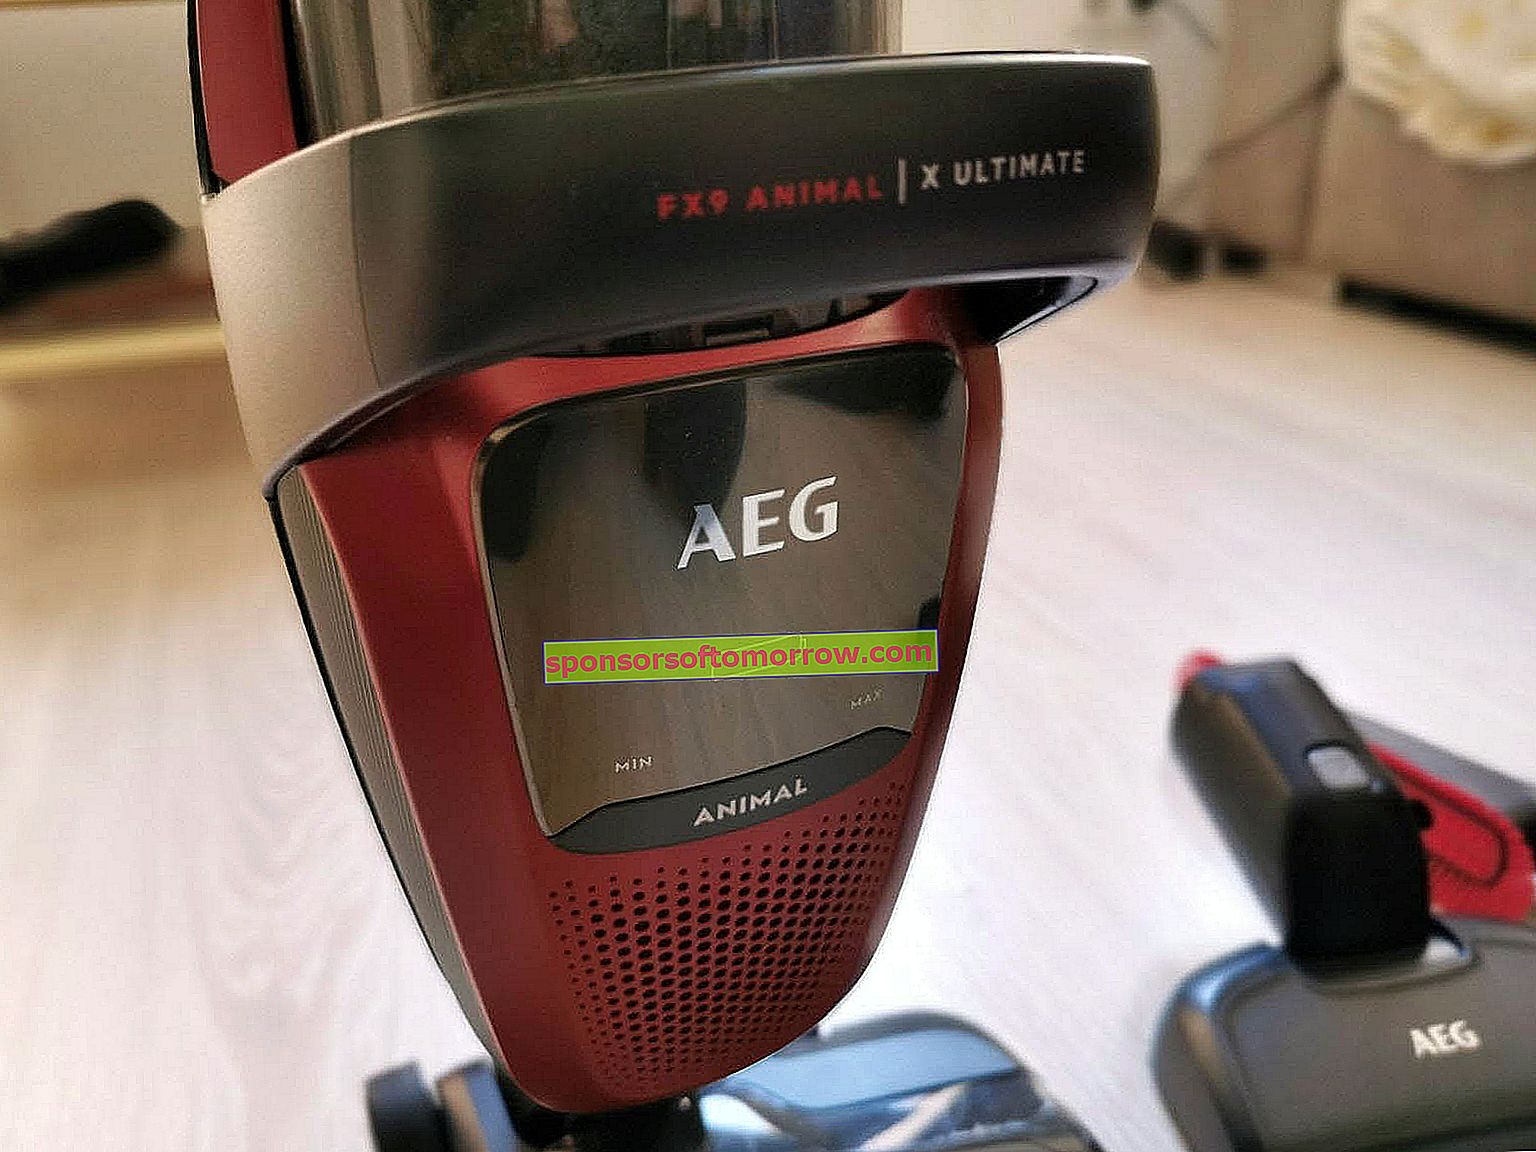 AEG FX9 vist with accessory